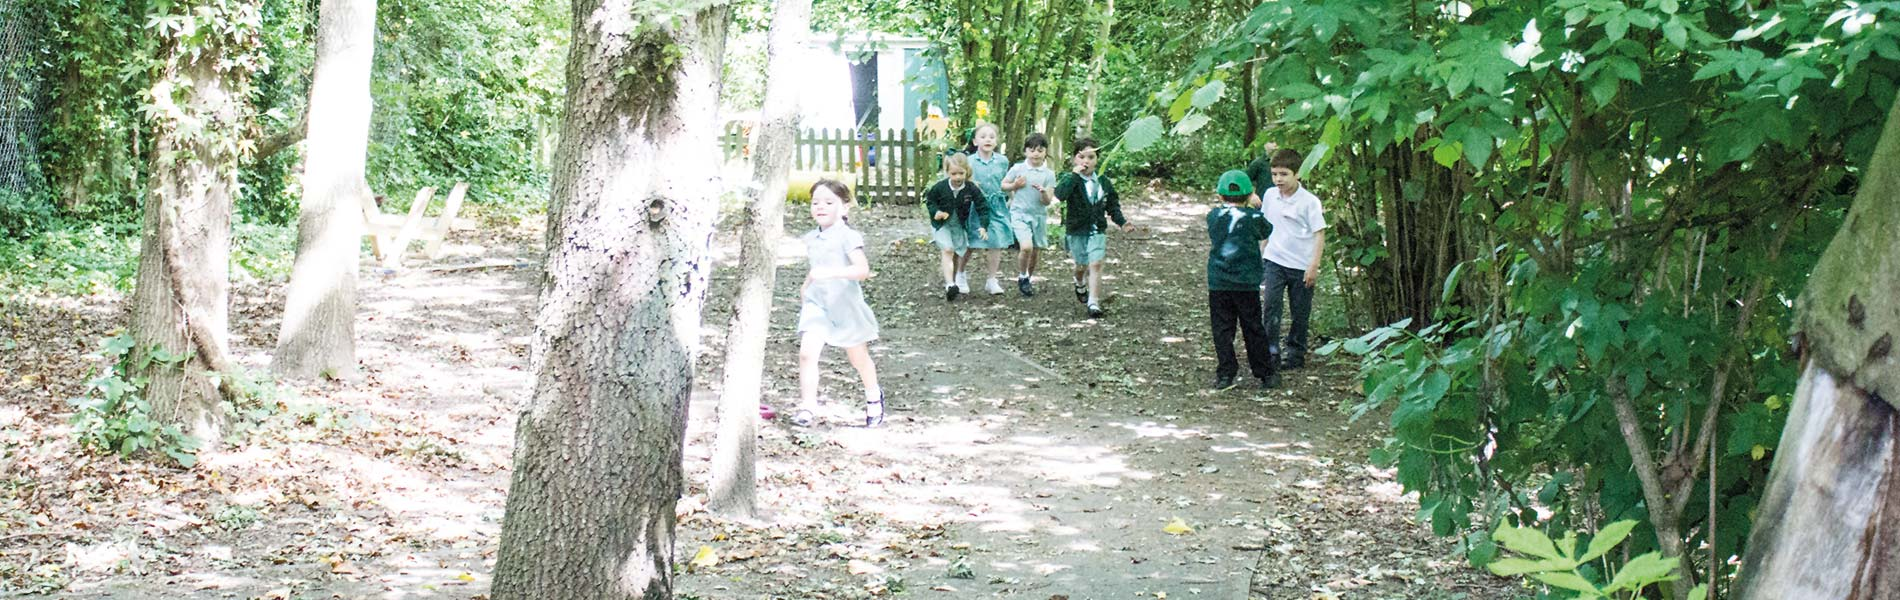 Children exploring grounds at COVP